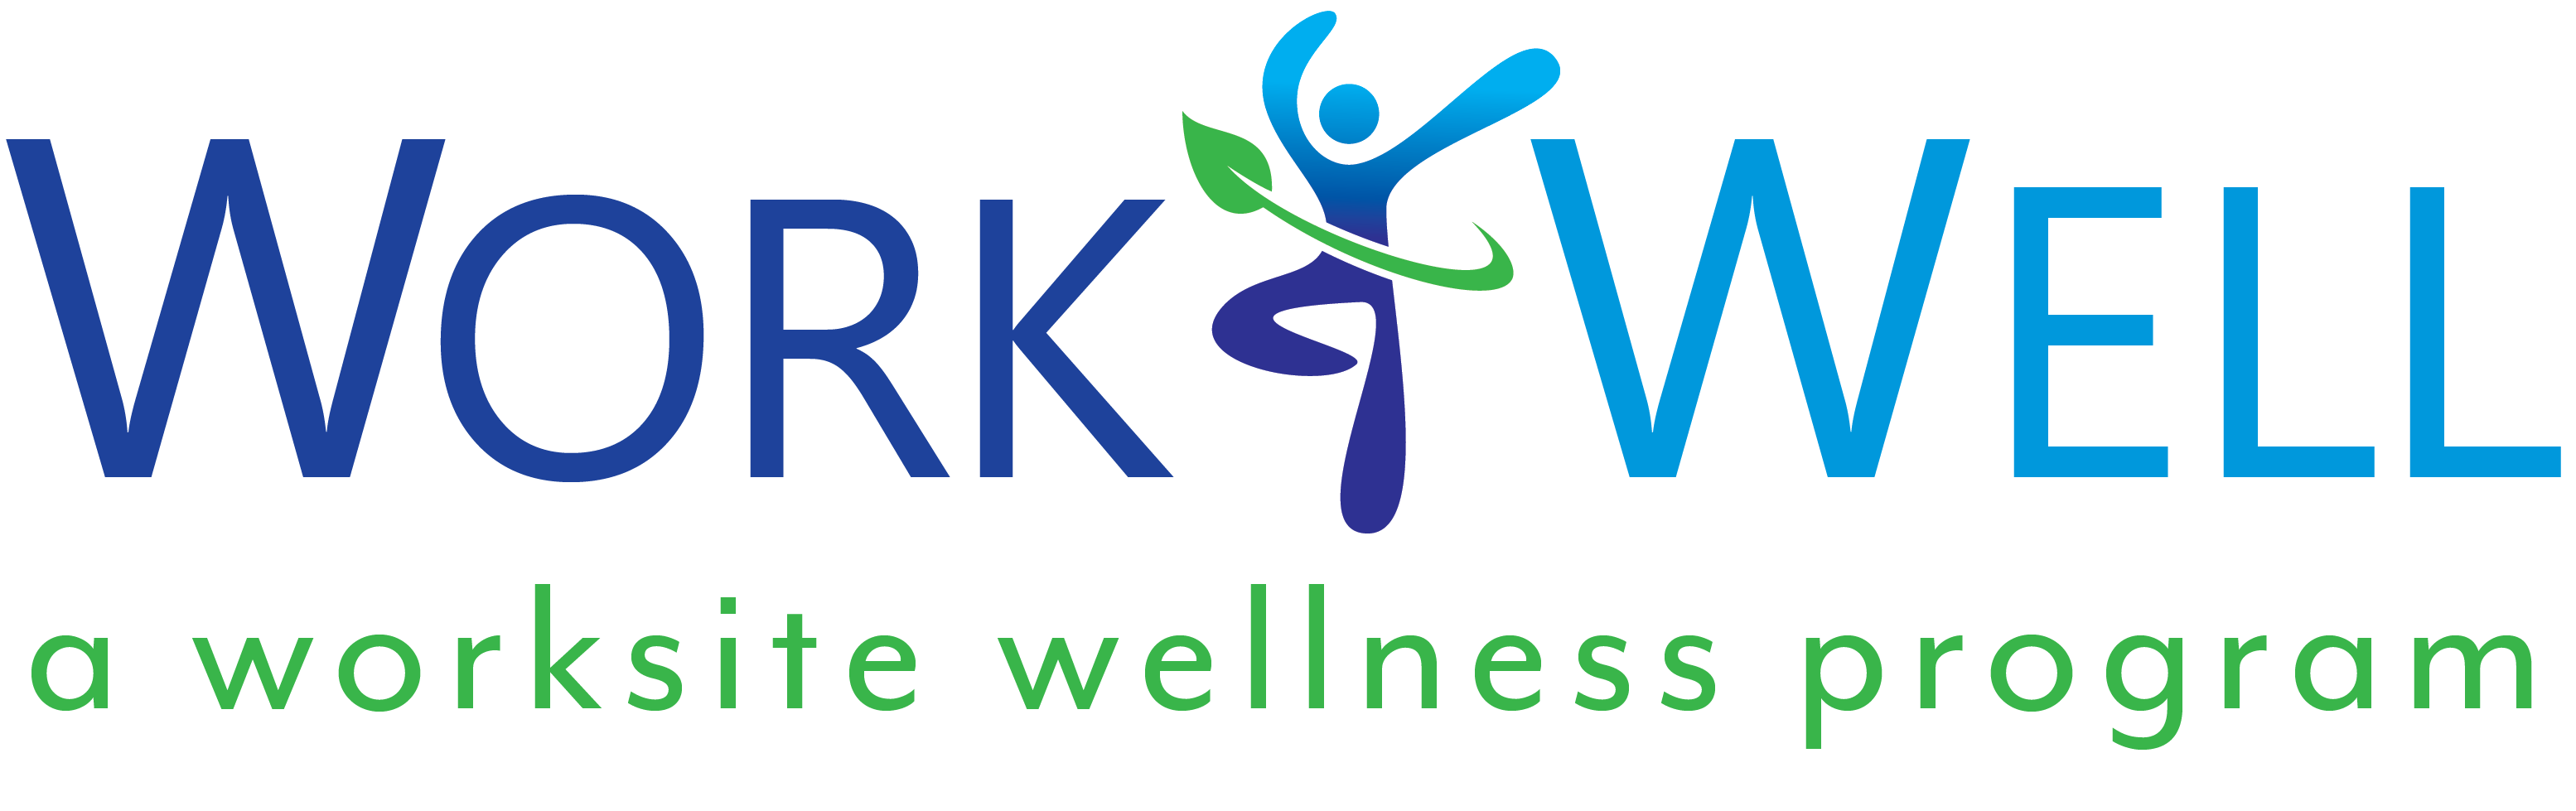 WorkWell Logo with tagline: a worksite wellness program